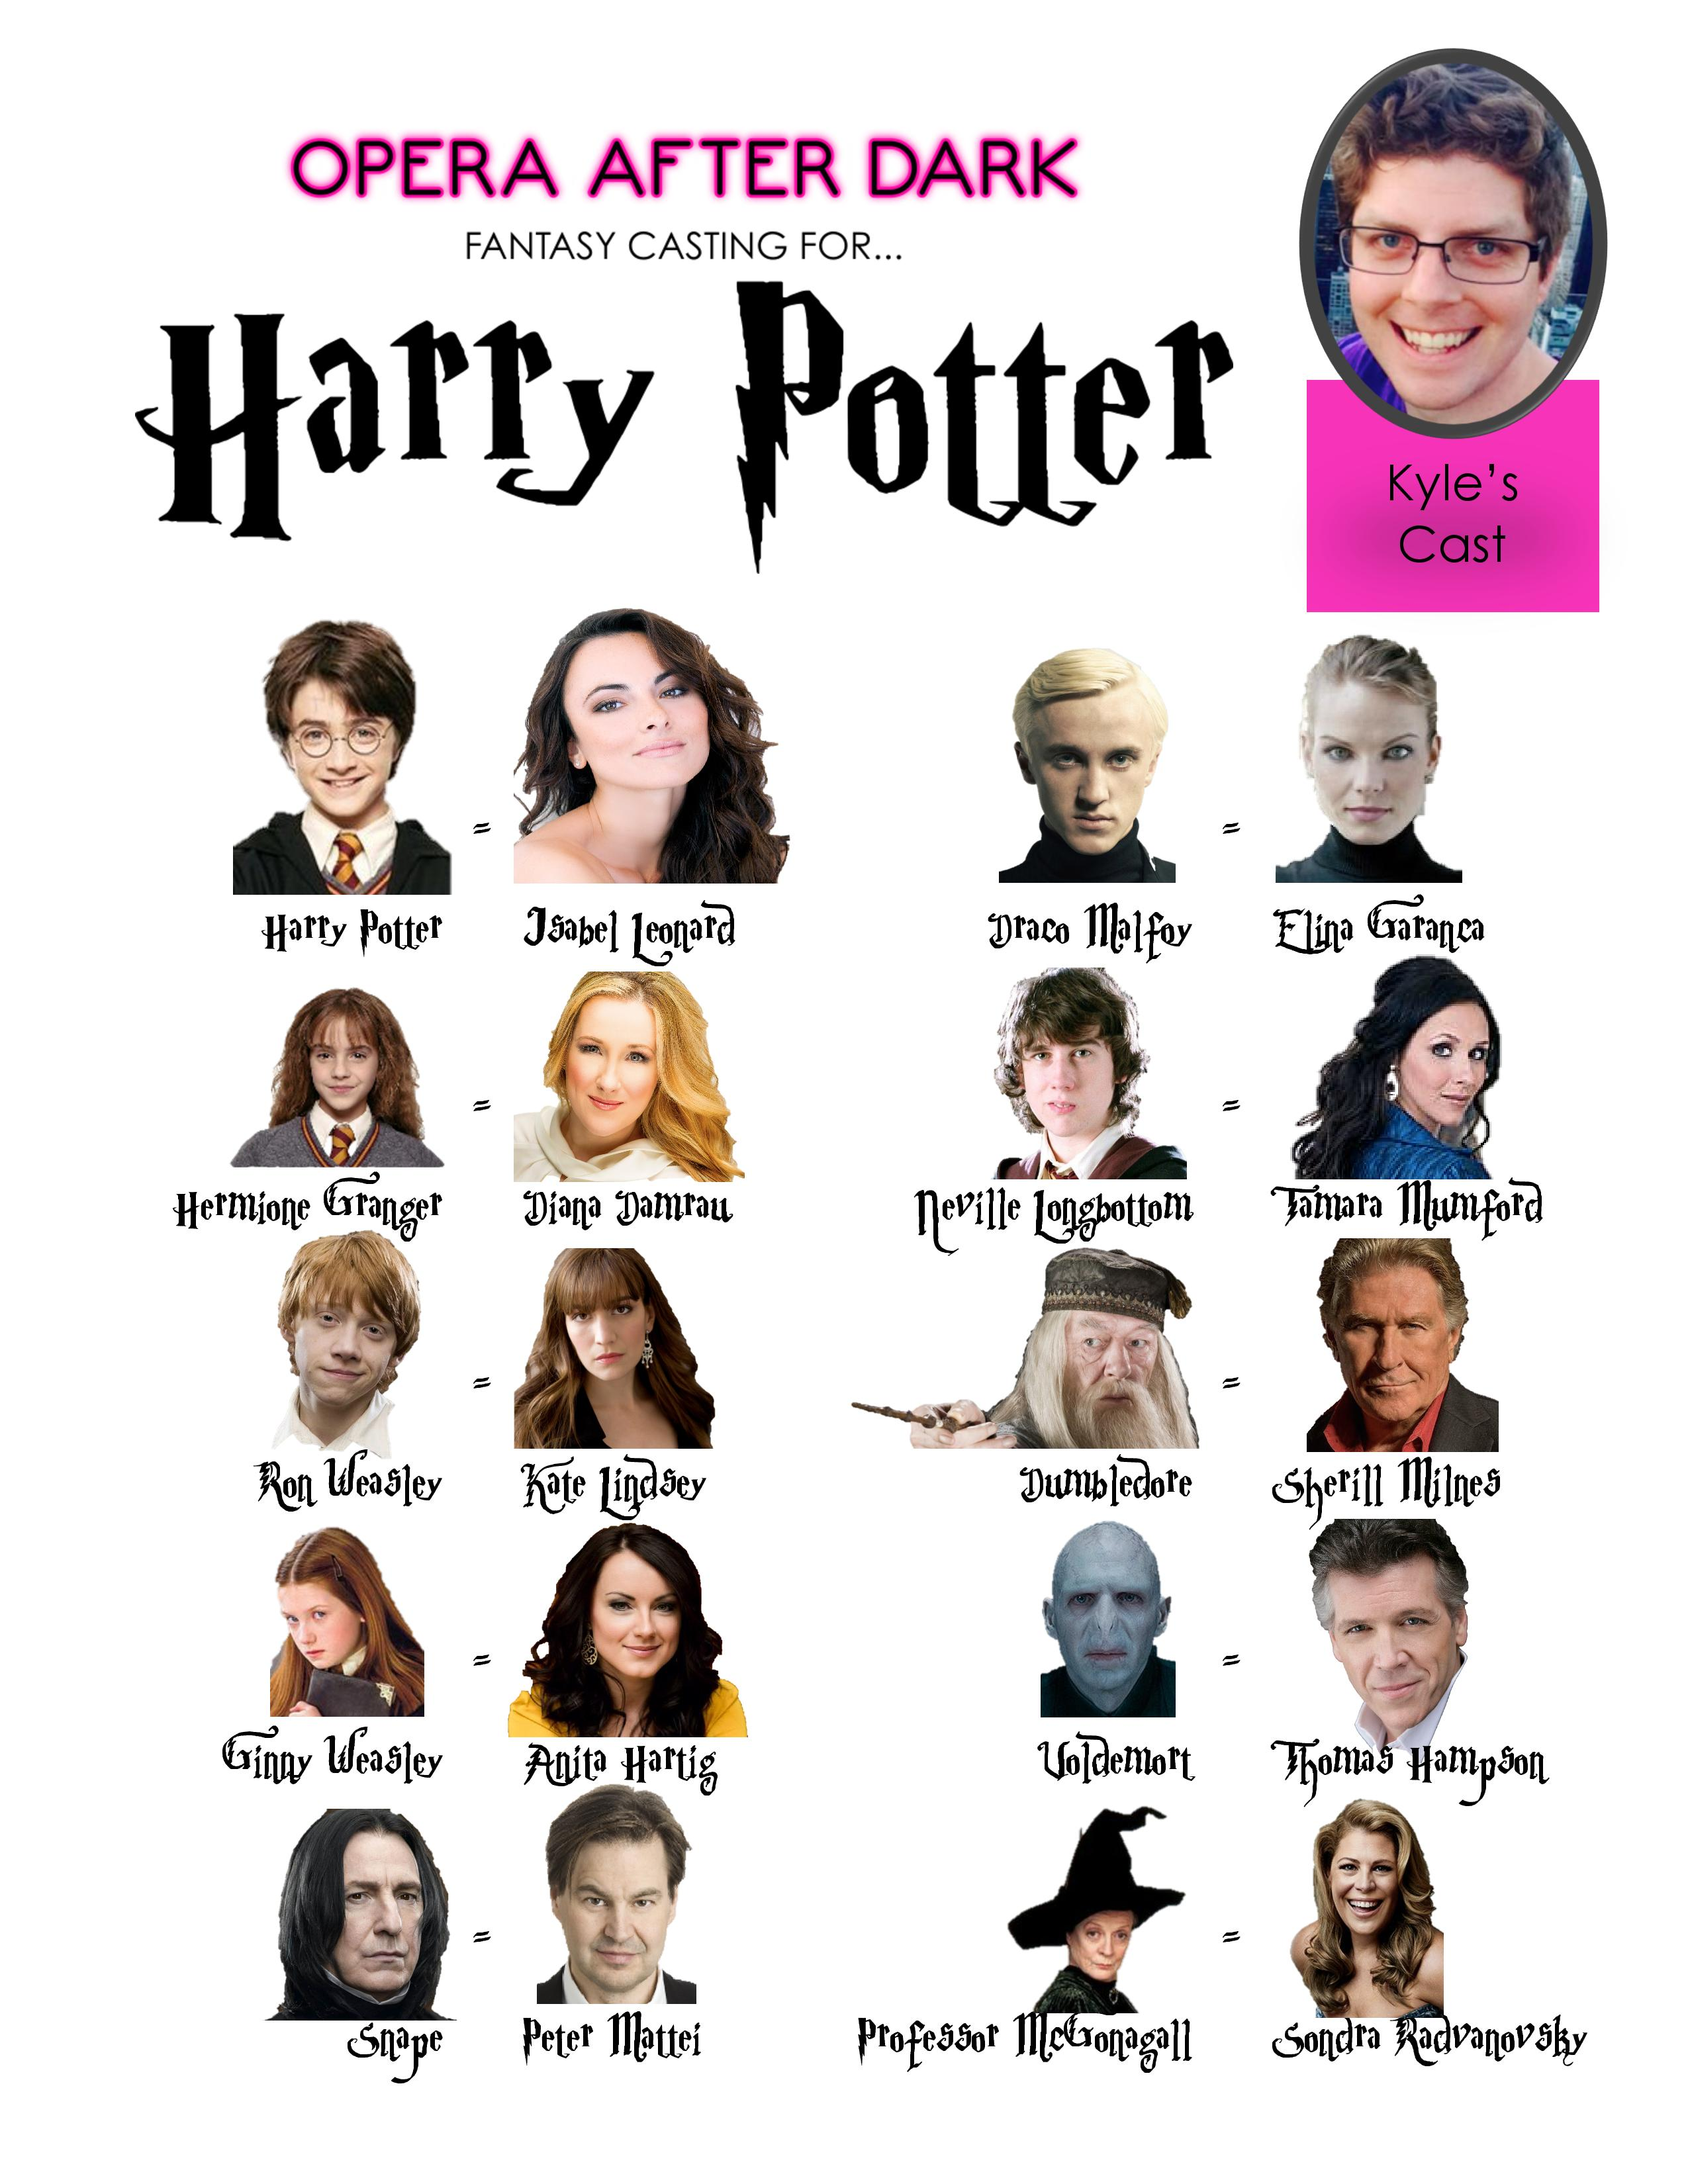 harry-potter-fantasy-casting-chart-kyle-page-001